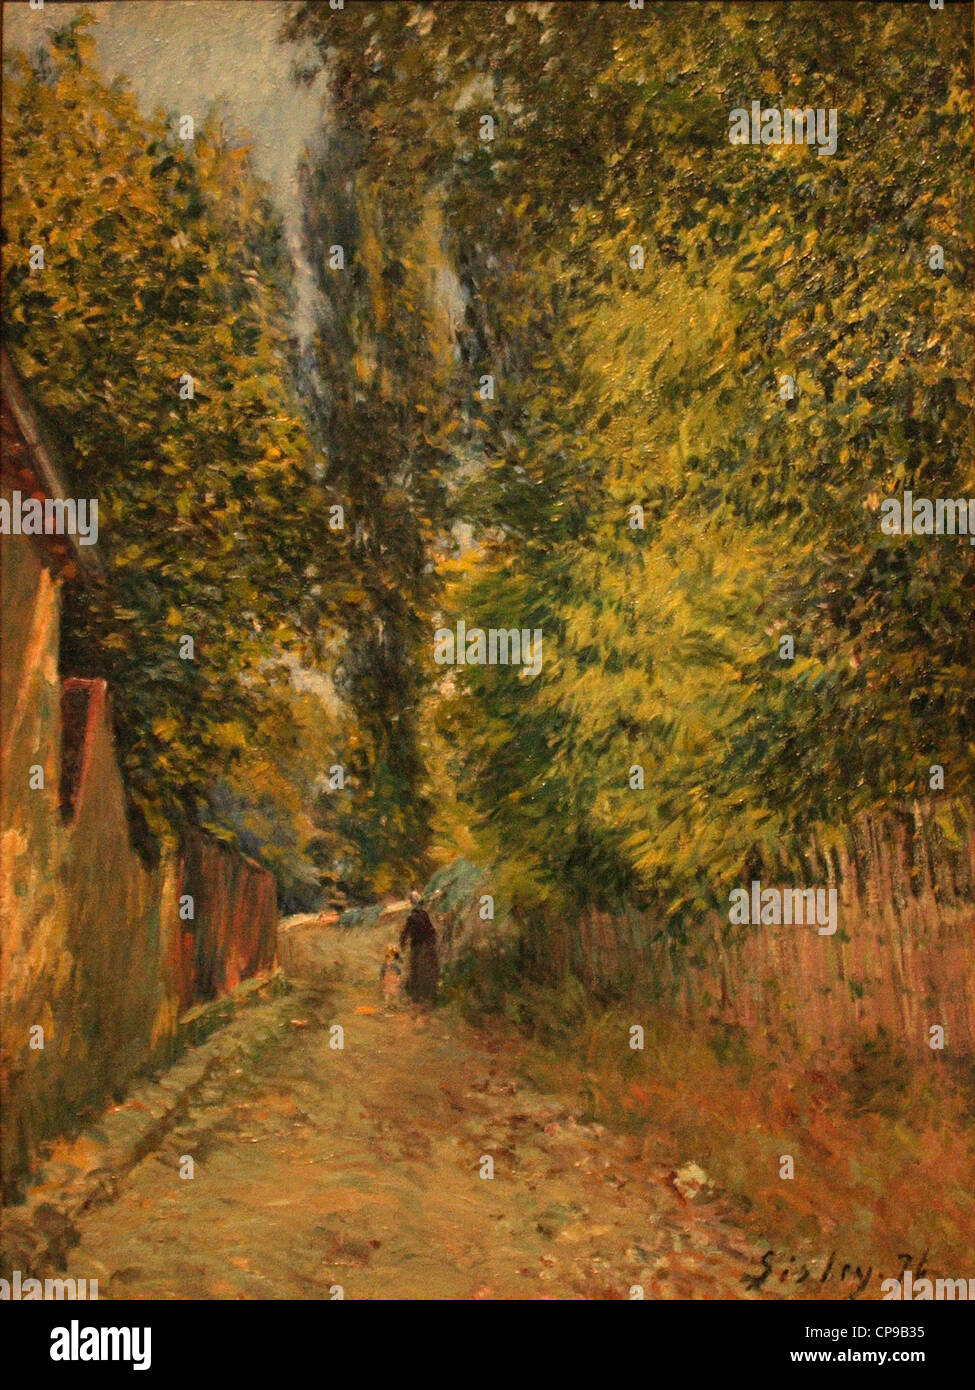 Painting of Sisley in the Wallraf-Richartz Museum, Cologne - Stock Image